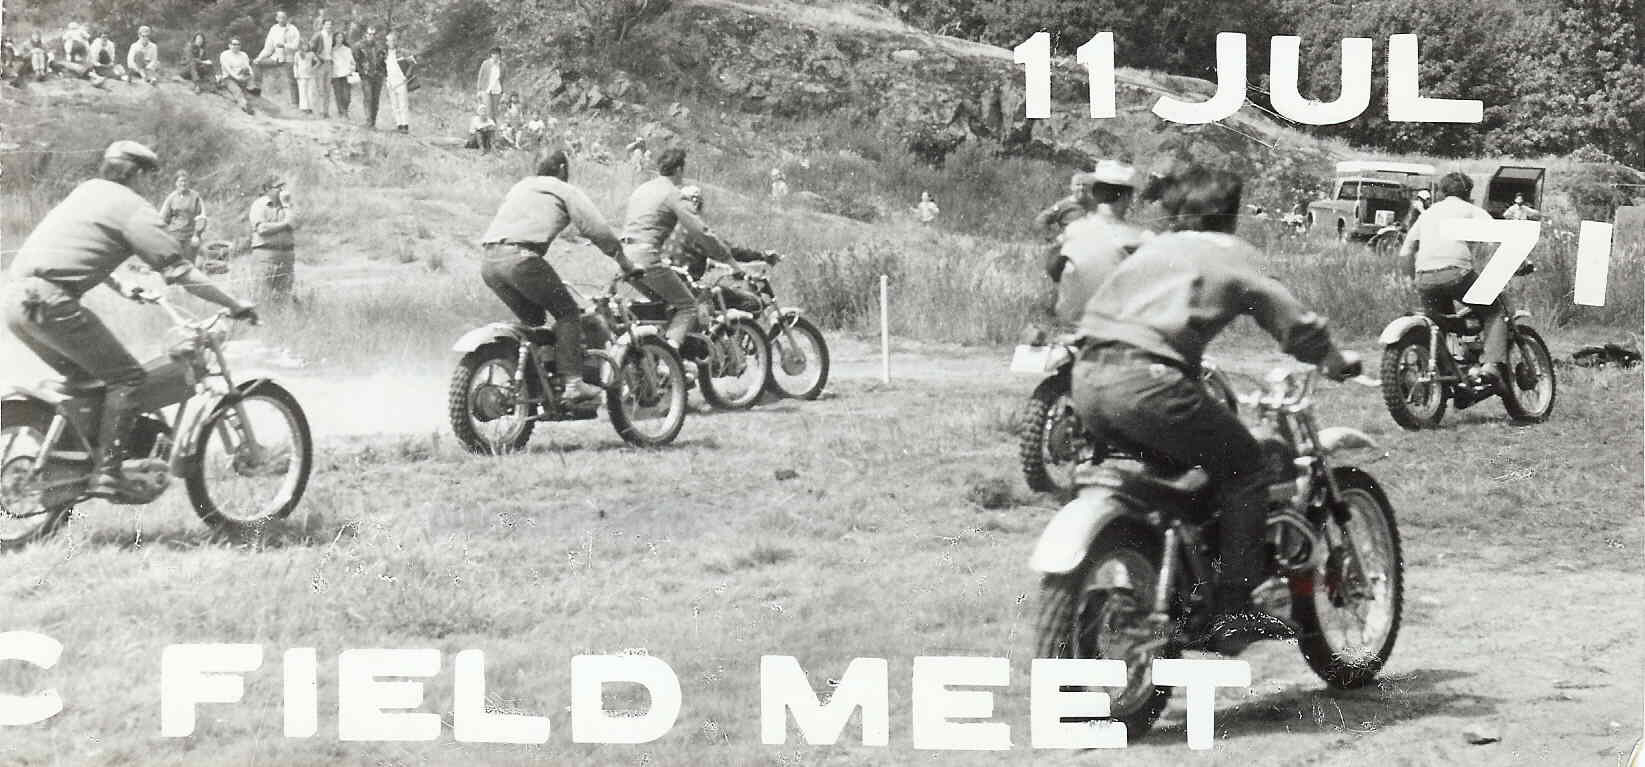 You are browsing images from the article: 1971 Field Meet Gallery